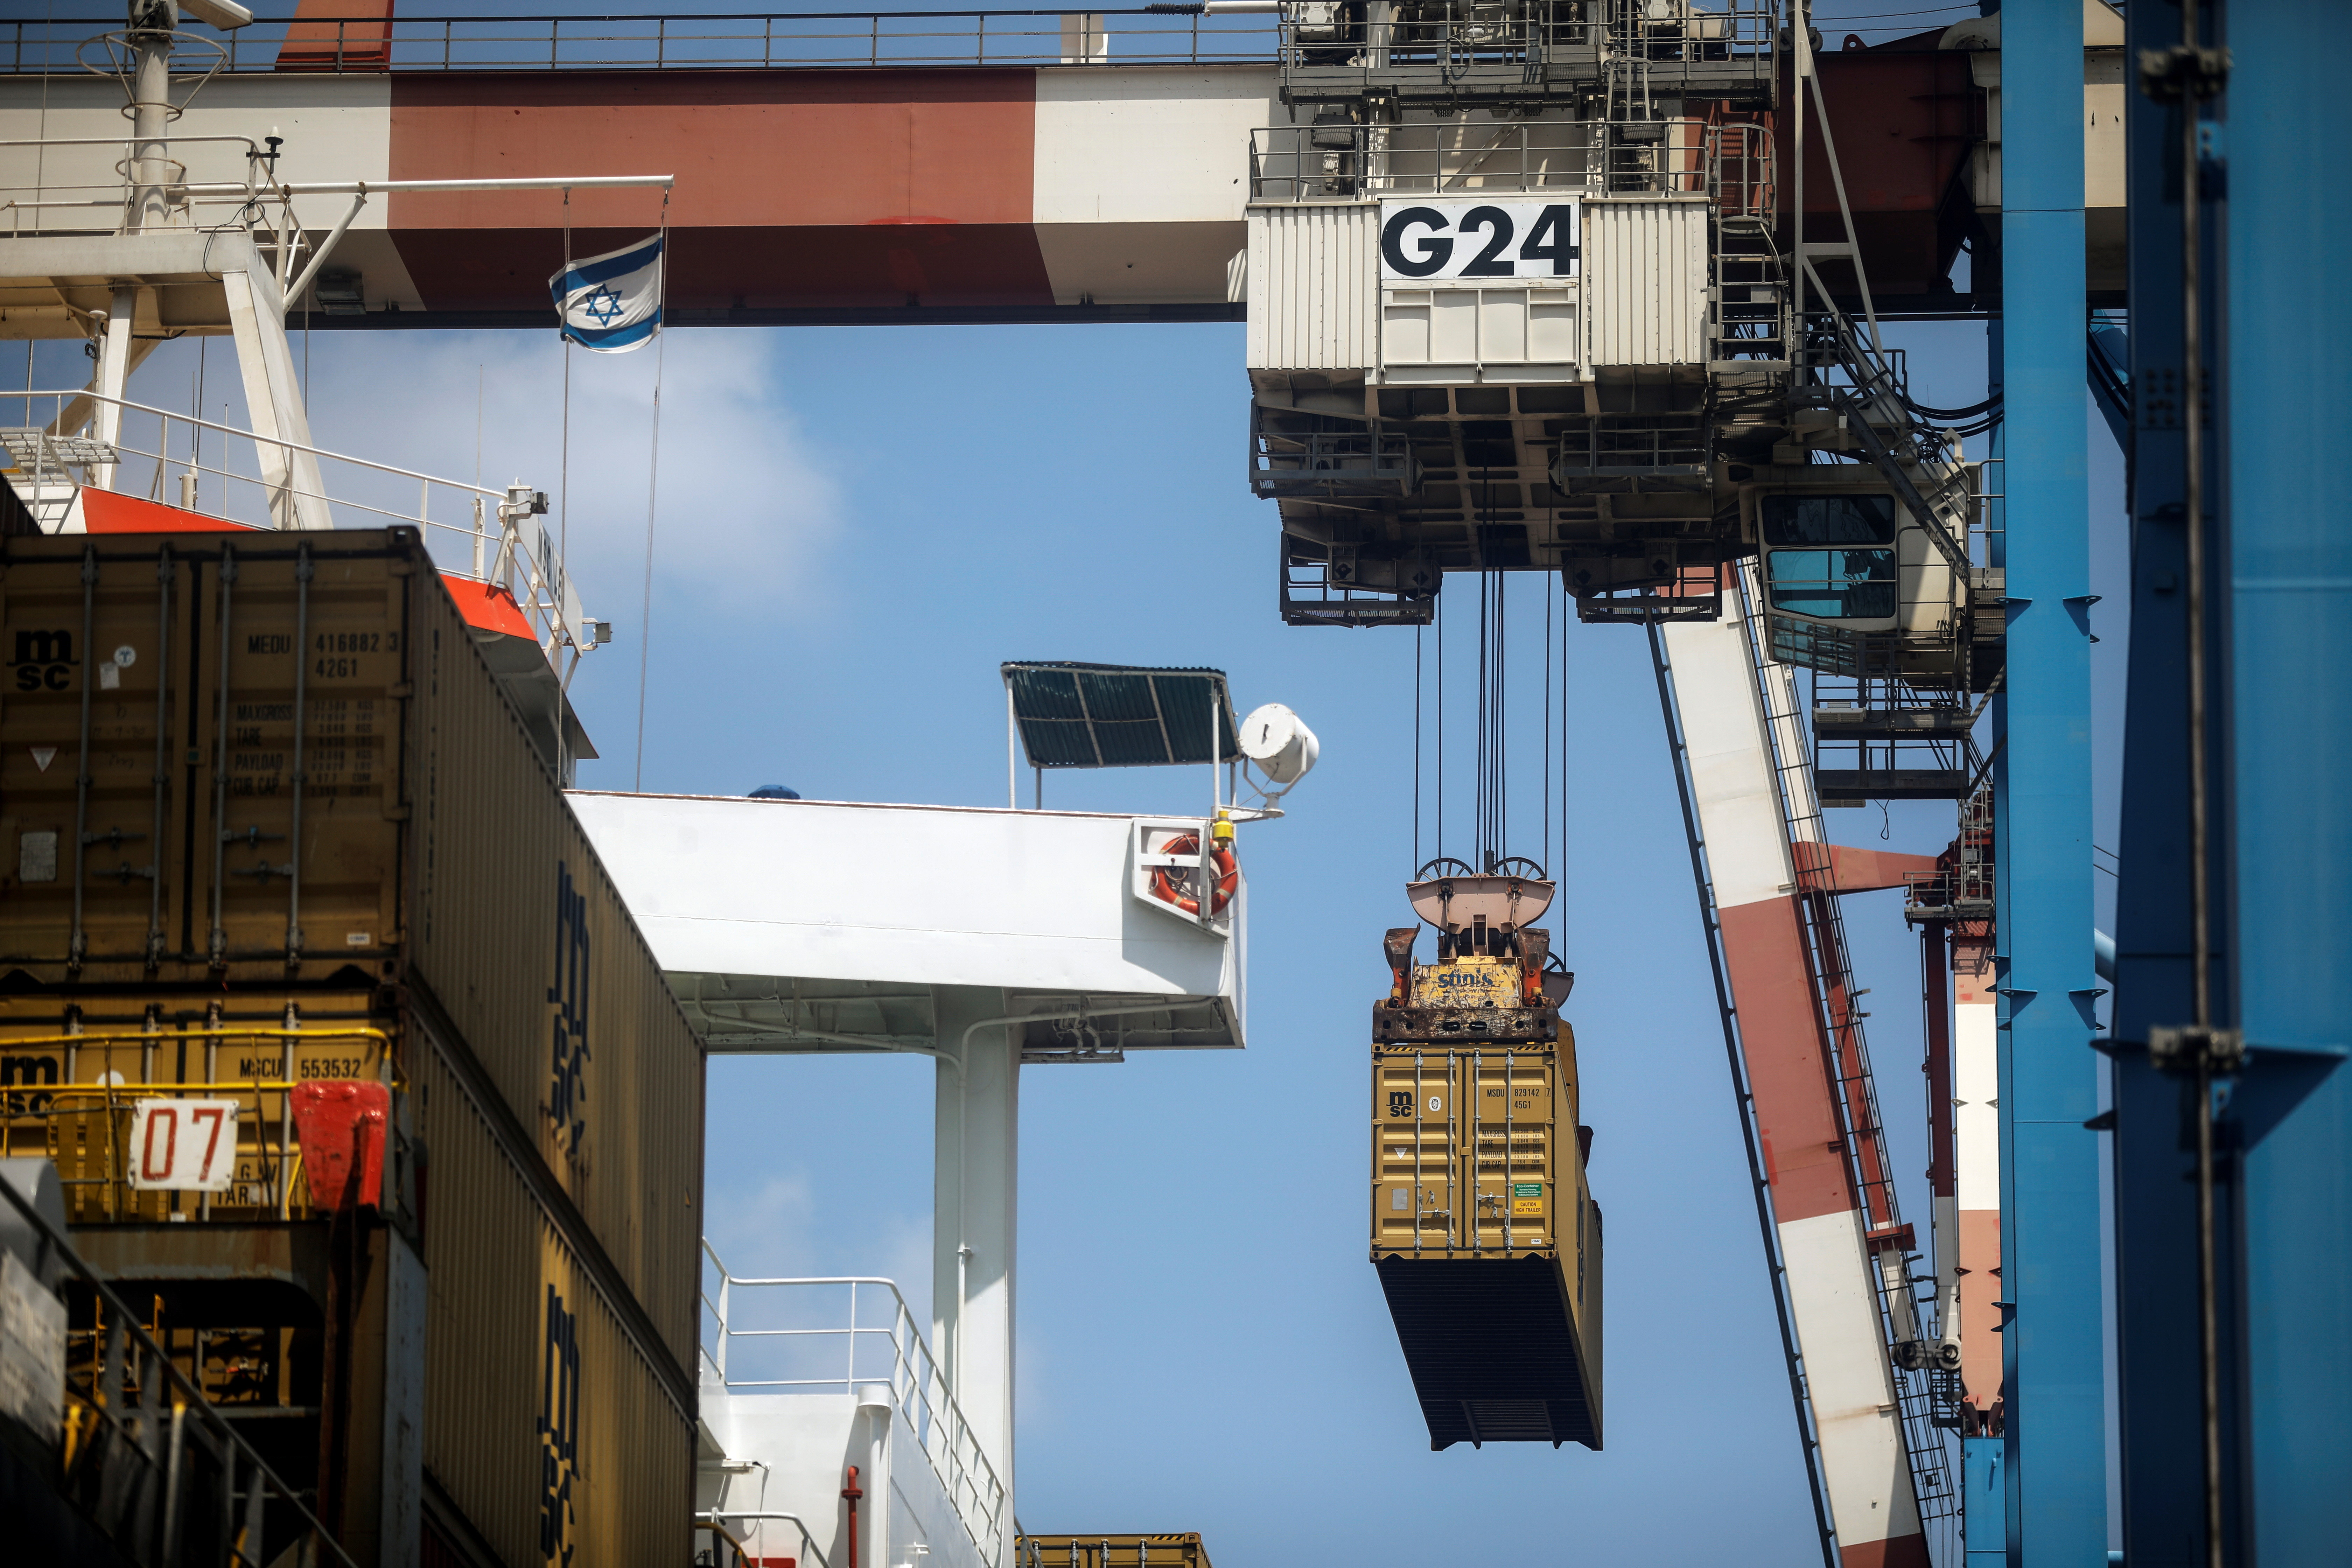 A container is being unloaded from a cargo ship while it is docked.